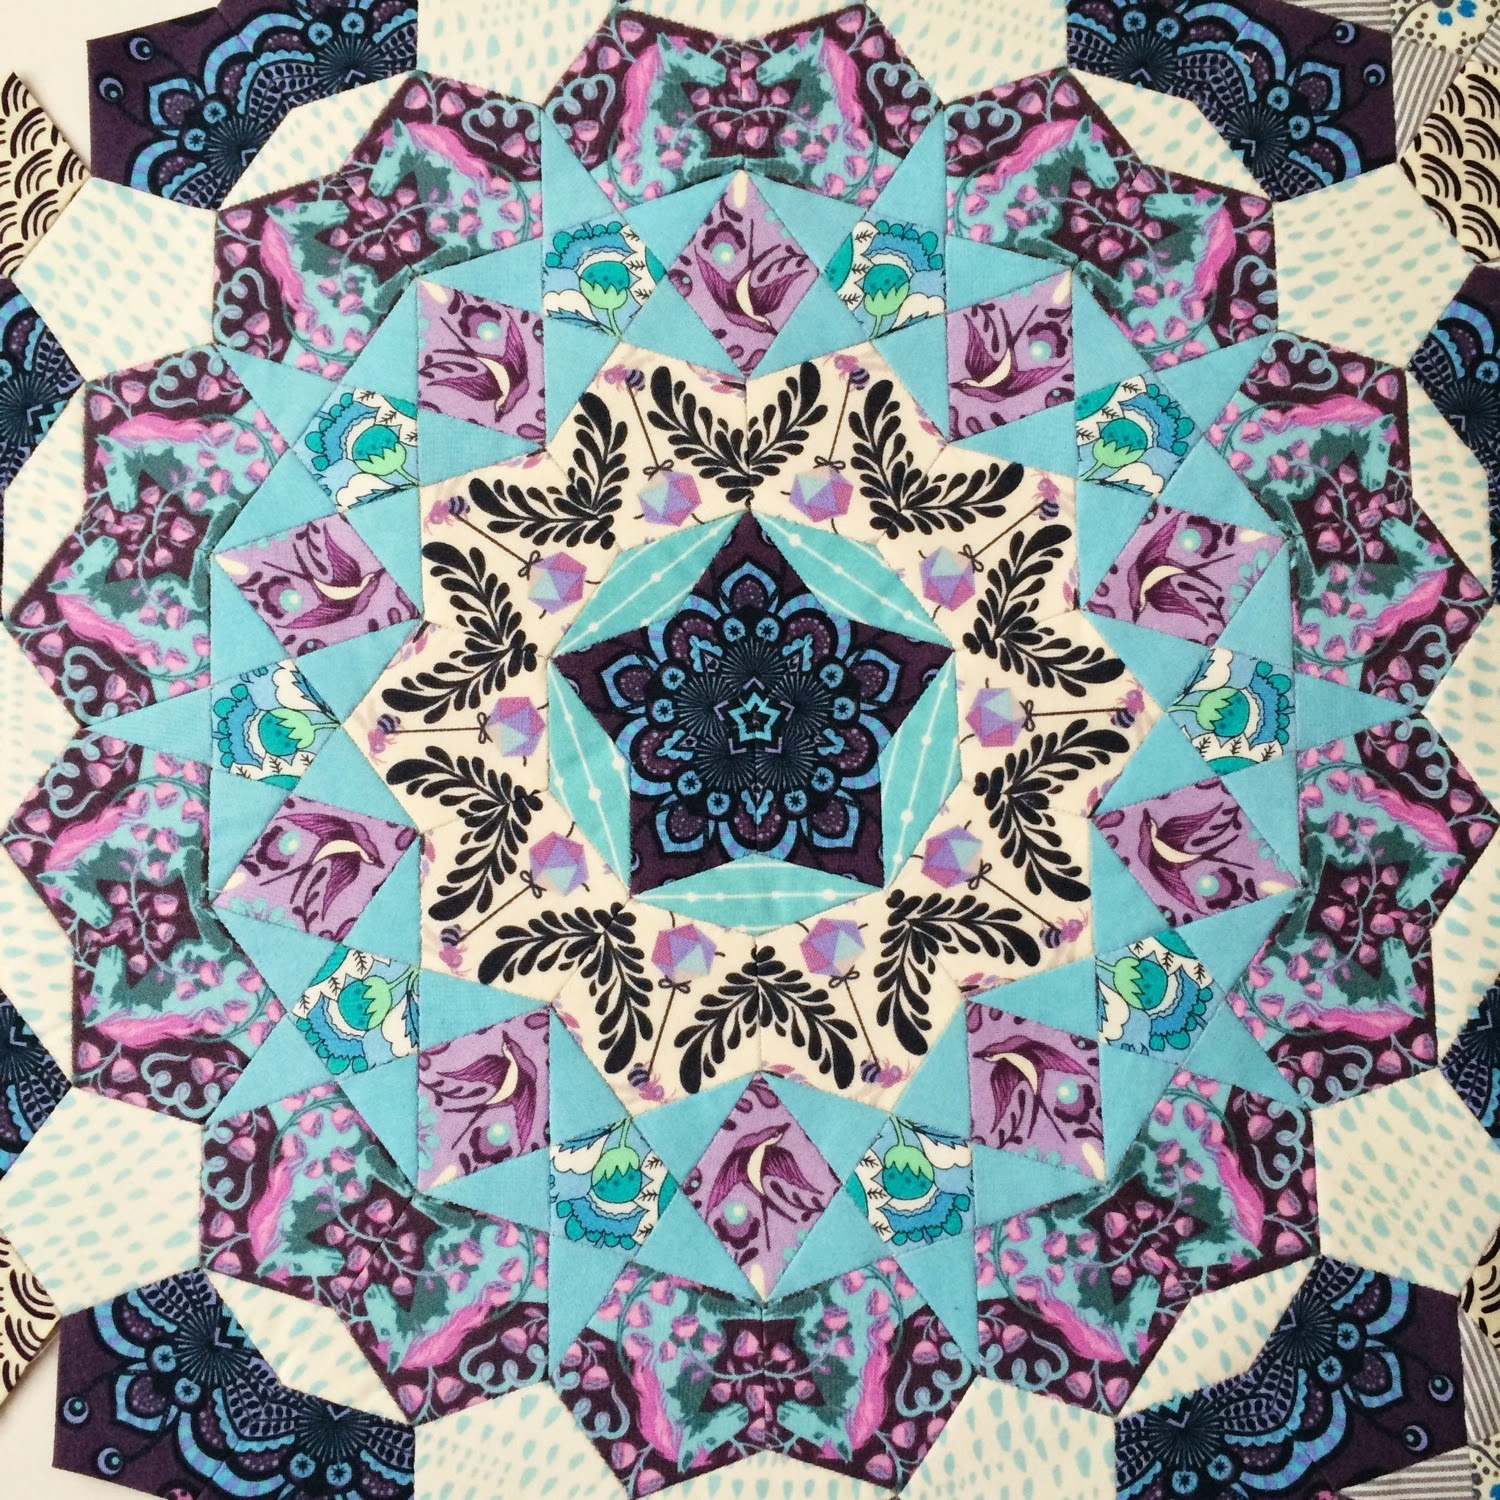 Passacaglia Quilt in Progress